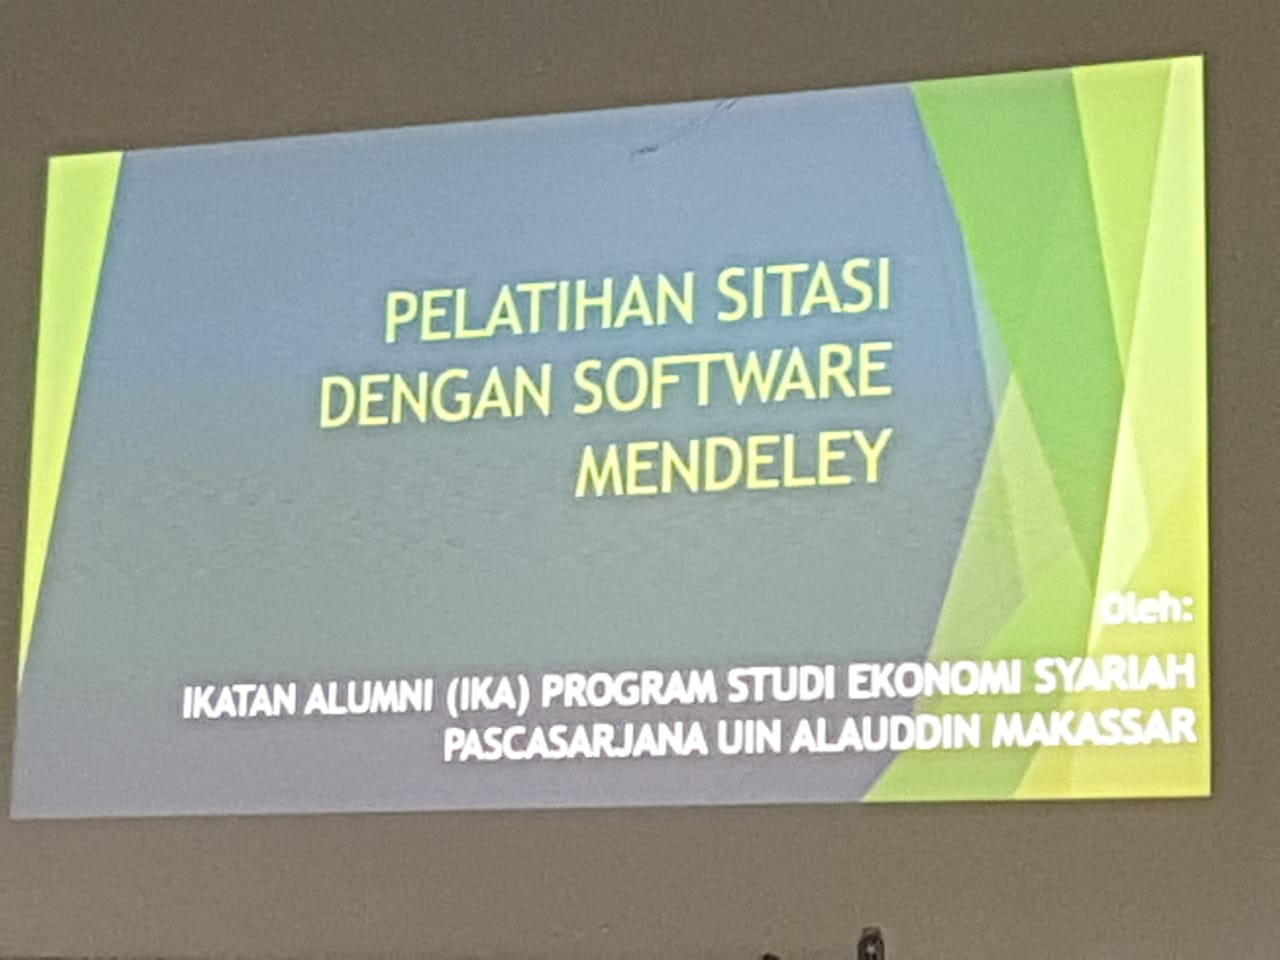 PELATIHAN SITASI DENGAN SOFTWARE MENDELEY